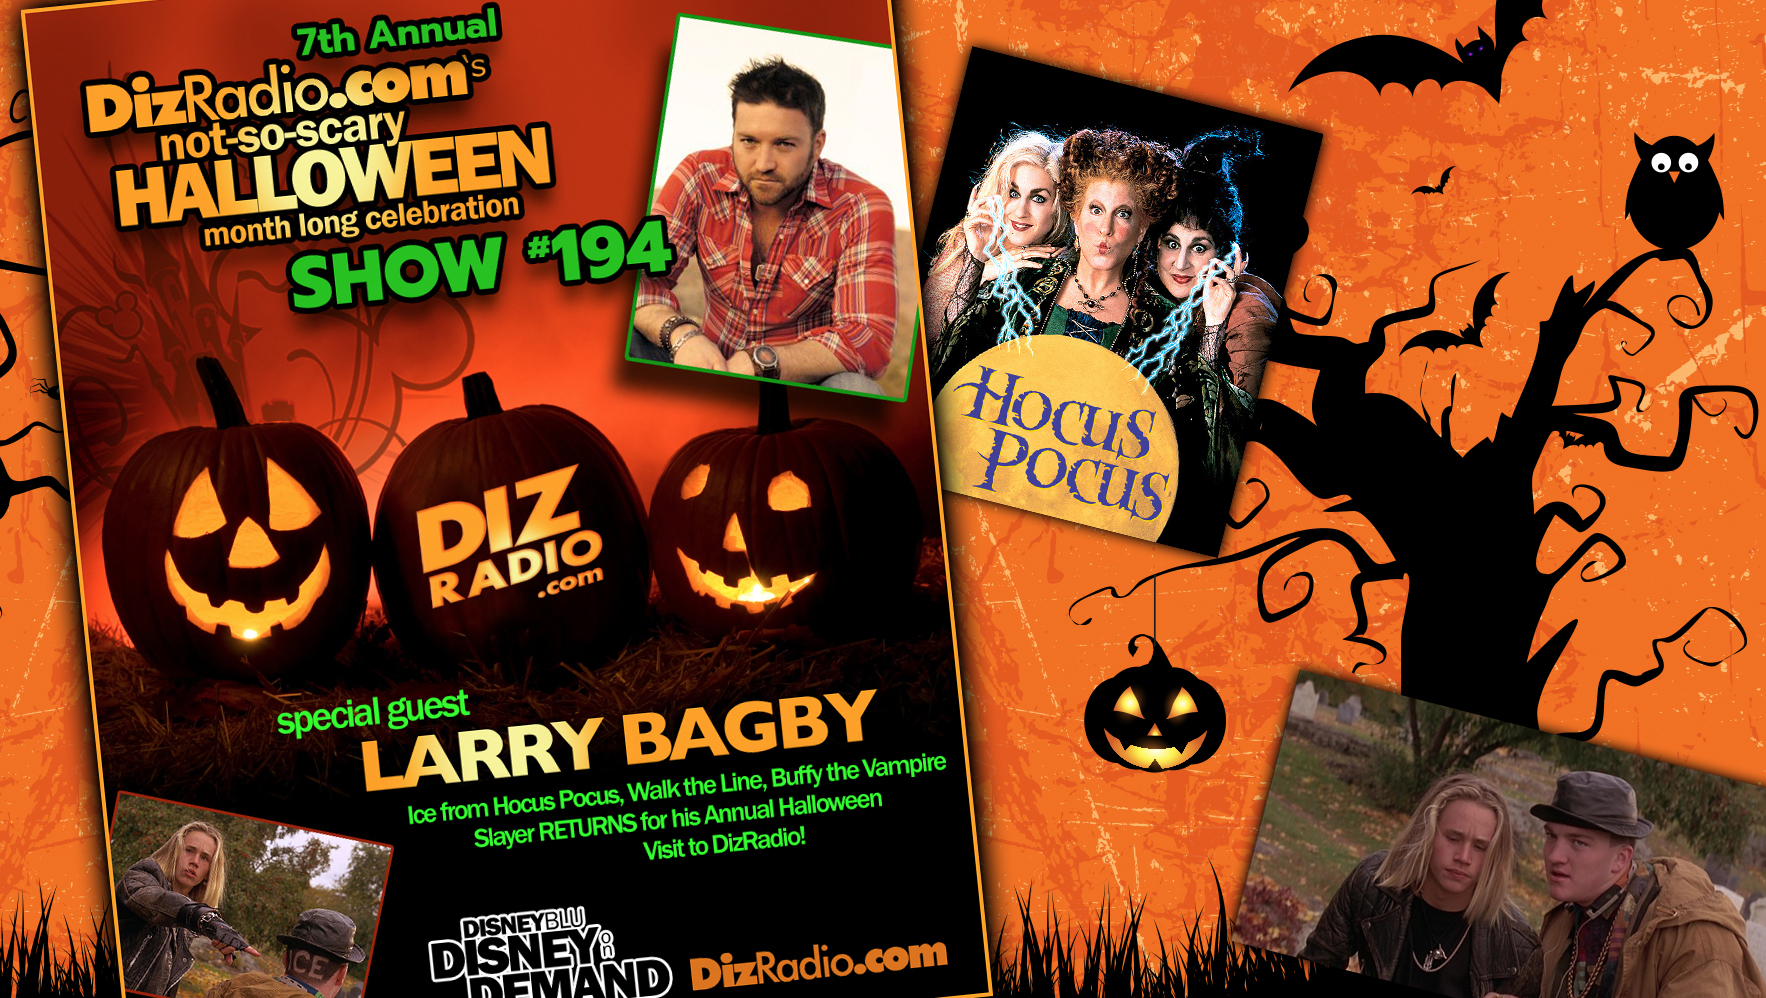 DisneyBlu's DizRadio Disney on Demand Podcast Show #194 w/ Special Guest LARRY BAGBY (Ice in Hocus Pocus, Walk the Line, Buffy the Vampire Slayer, Musician)